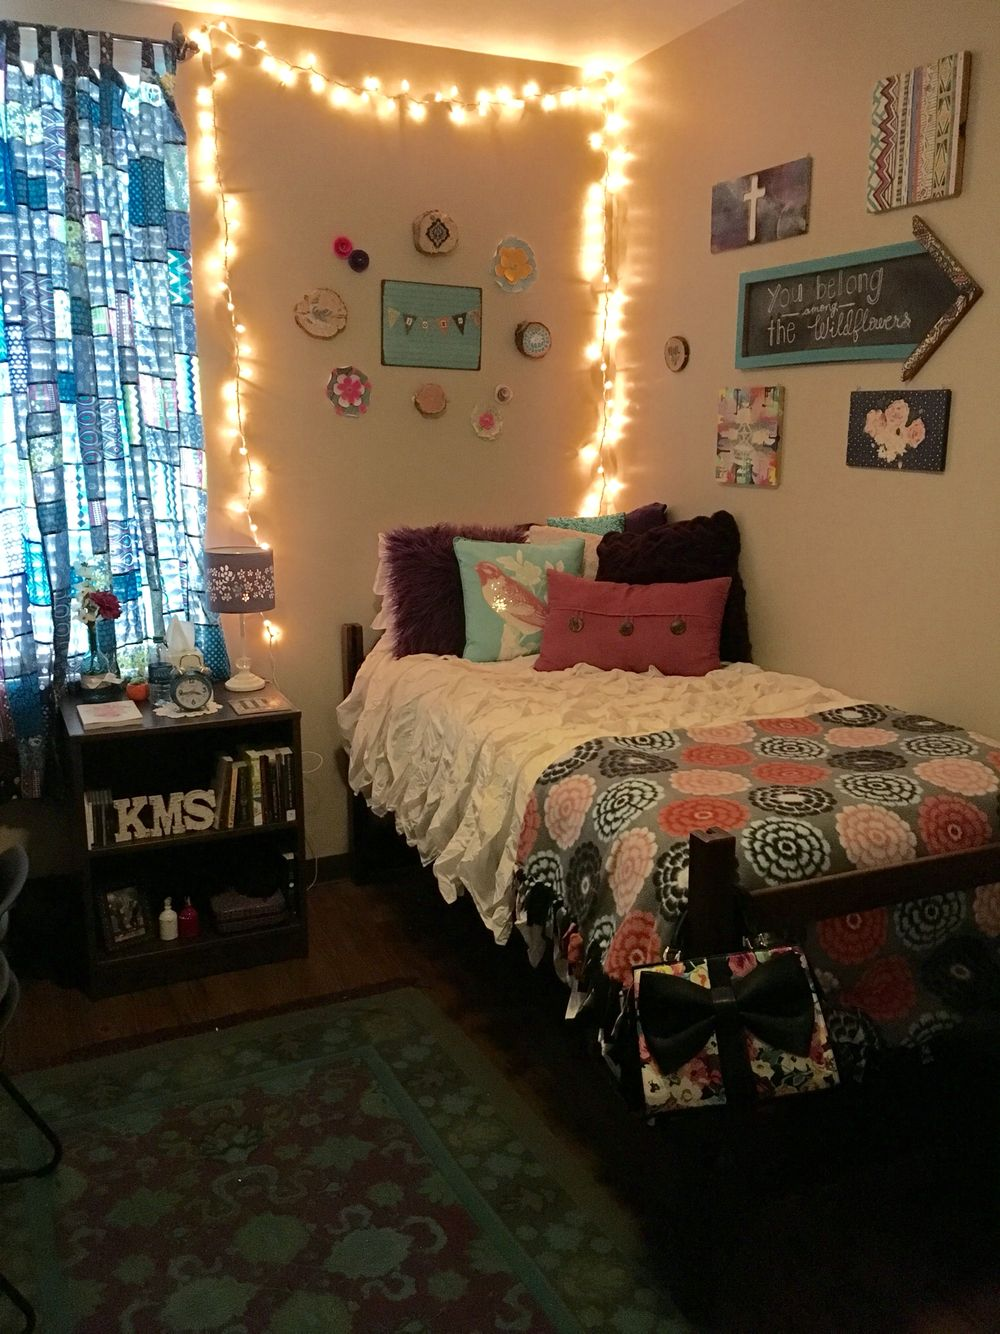 Dorm Room TTU Talkington Bedding From Pottery Barn Curtains And Rug Urban Outfitter